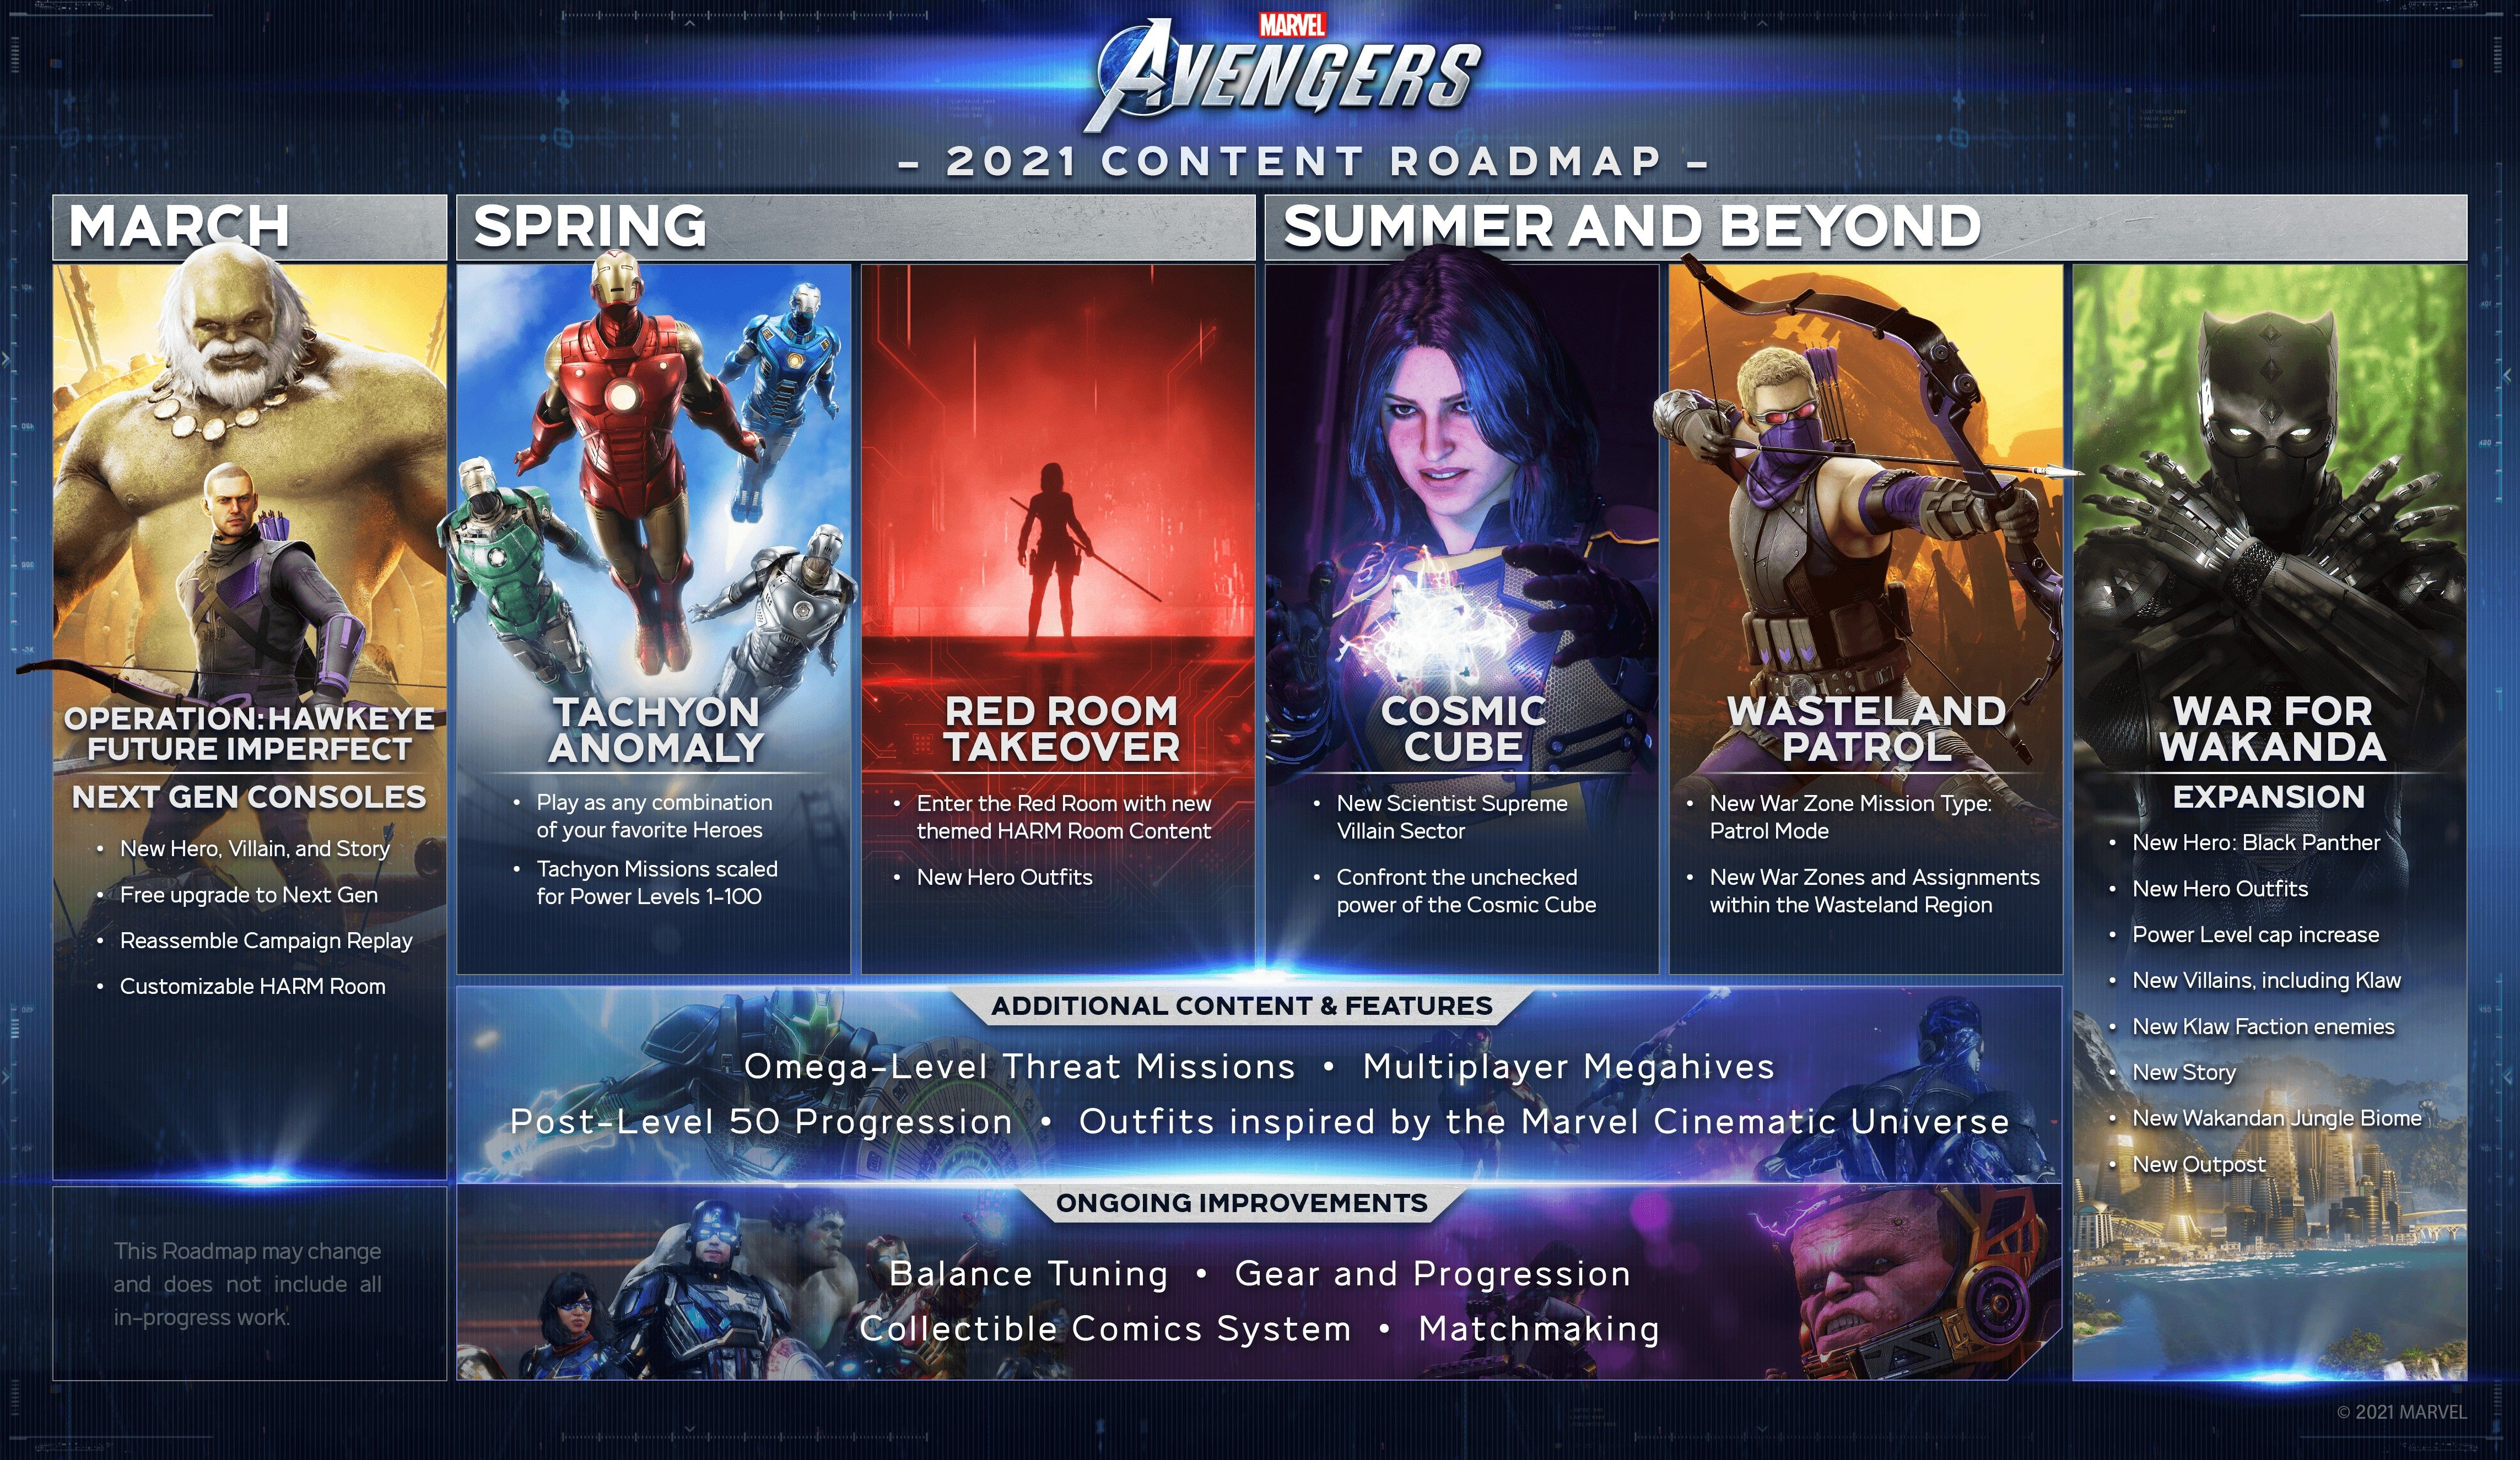 Marvel's Avengers 2021 Roadmap